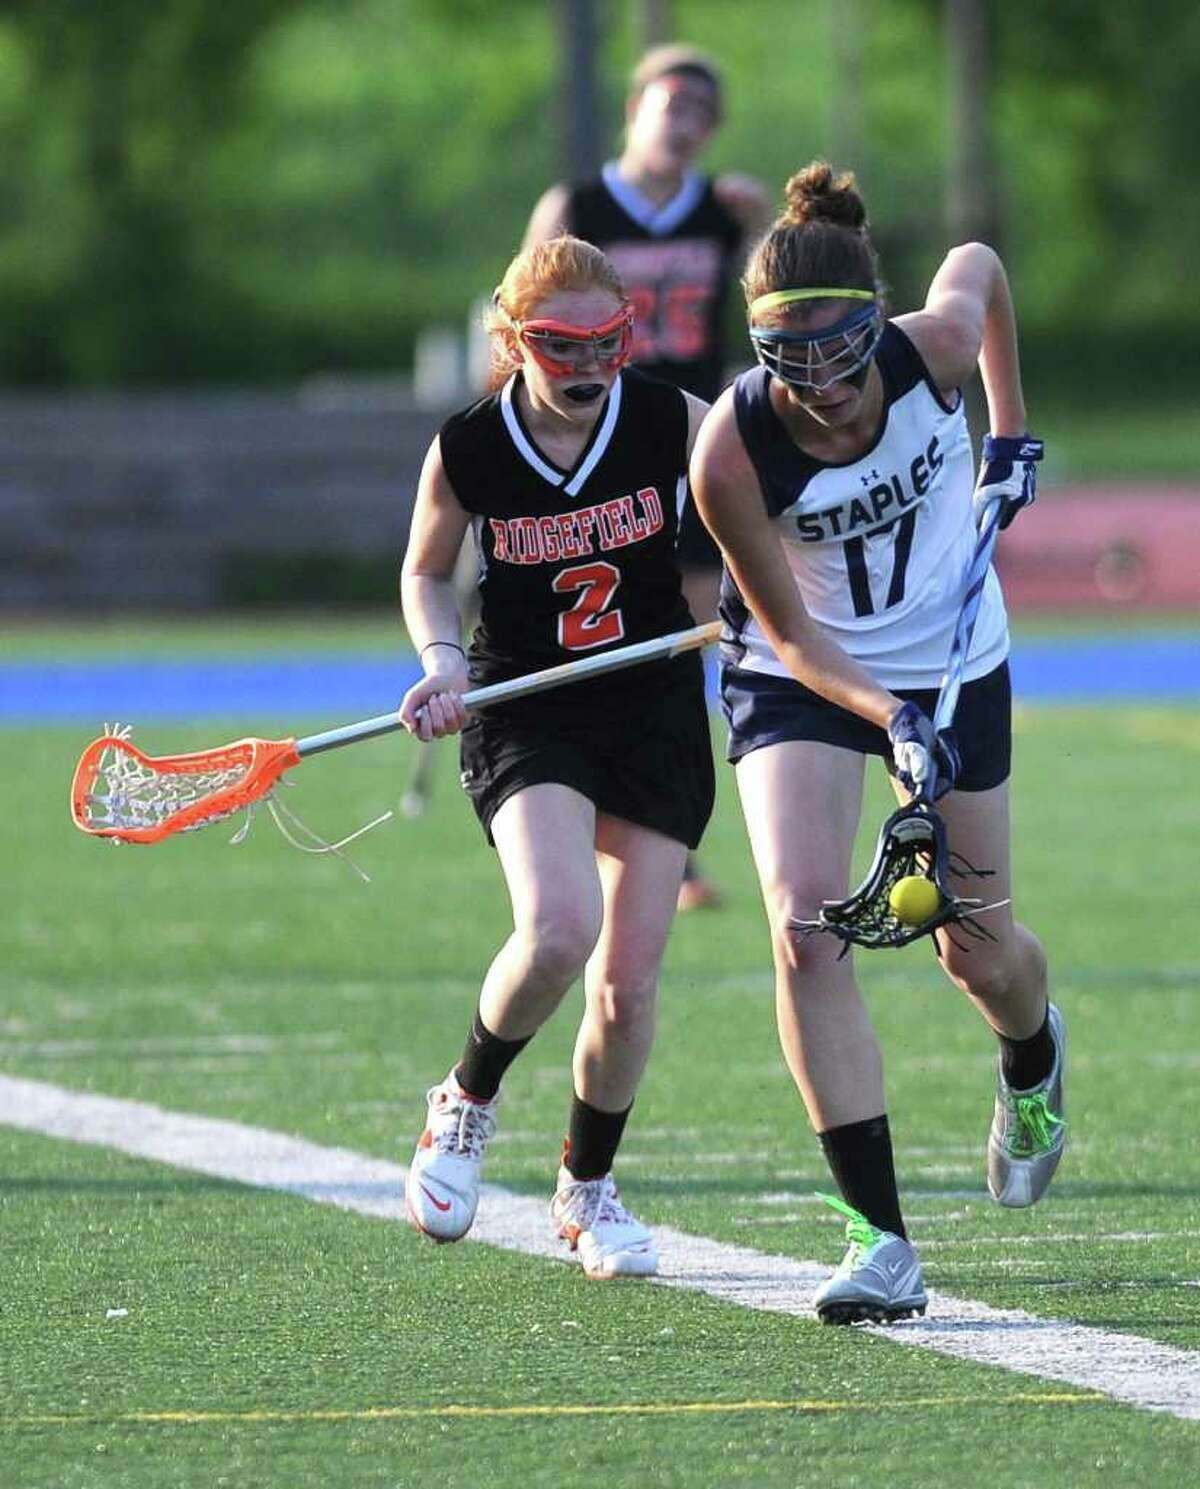 Staples' Elizabeth Driscoll carries the ball as Ridgefield's Casey Briody defends during Friday's game at Staples High School on May 20, 2011.